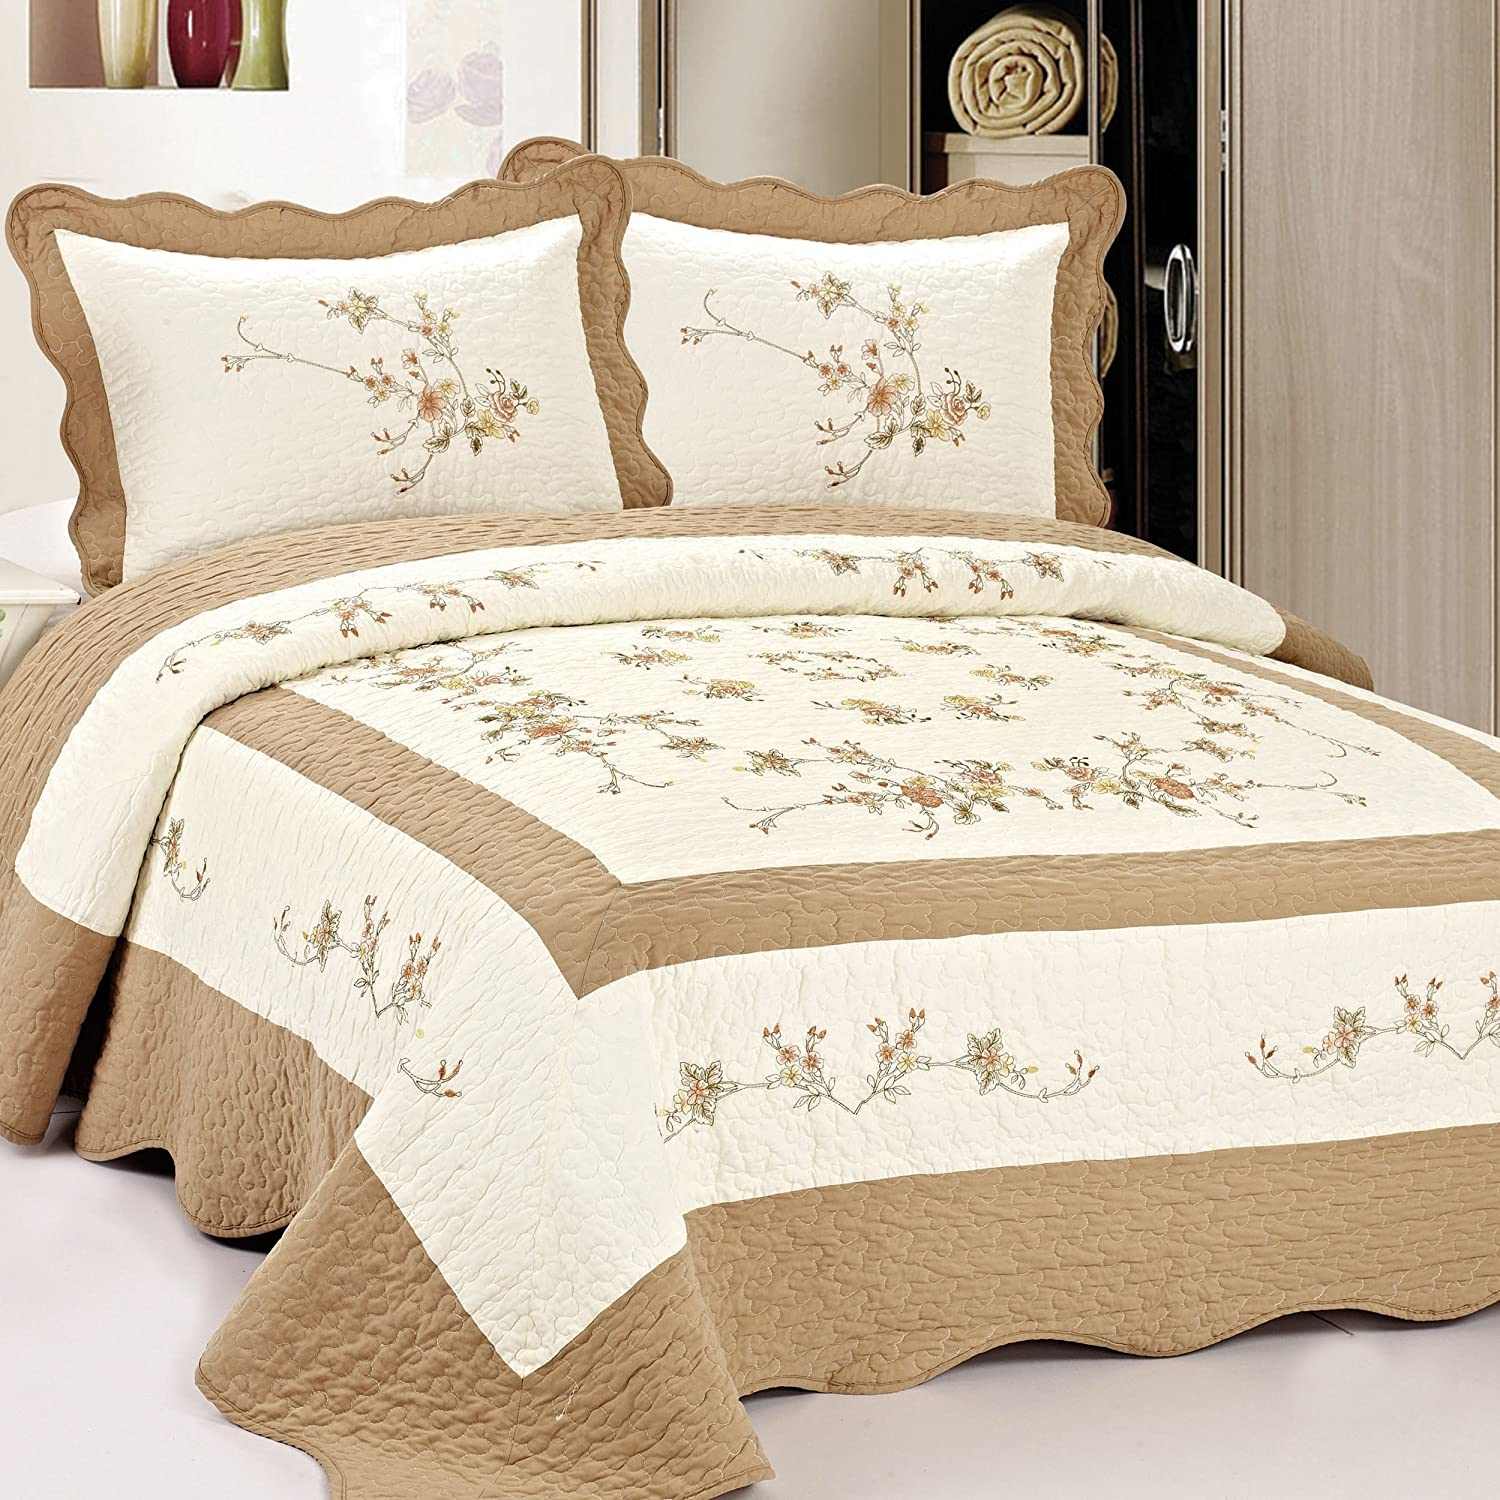 Fashion St. Vineyard Autumn Memphis Mall Sales for sale Pre-Washed 86 by 94-Inch Bei Quilt